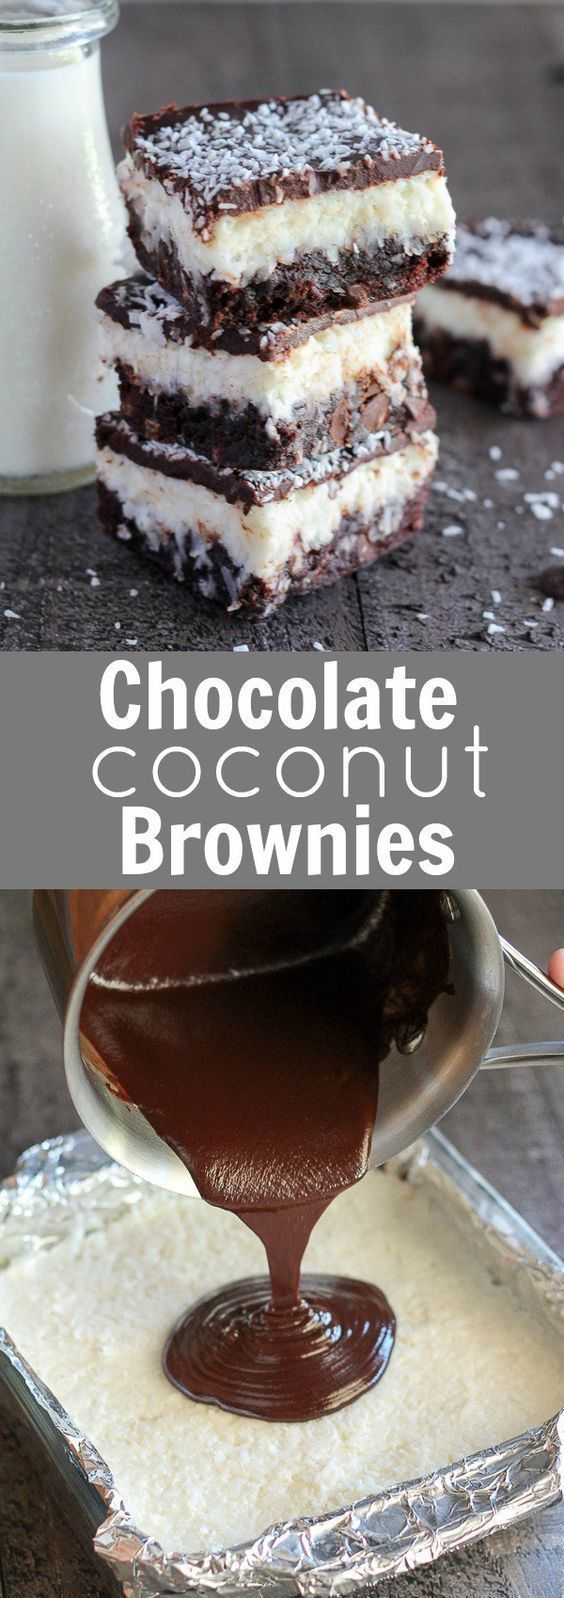 Chocolate Coconut Brownies . Fudgy brownies topped with a layer of creamy sweet coconut, and finished with a smooth chocolate ganache .